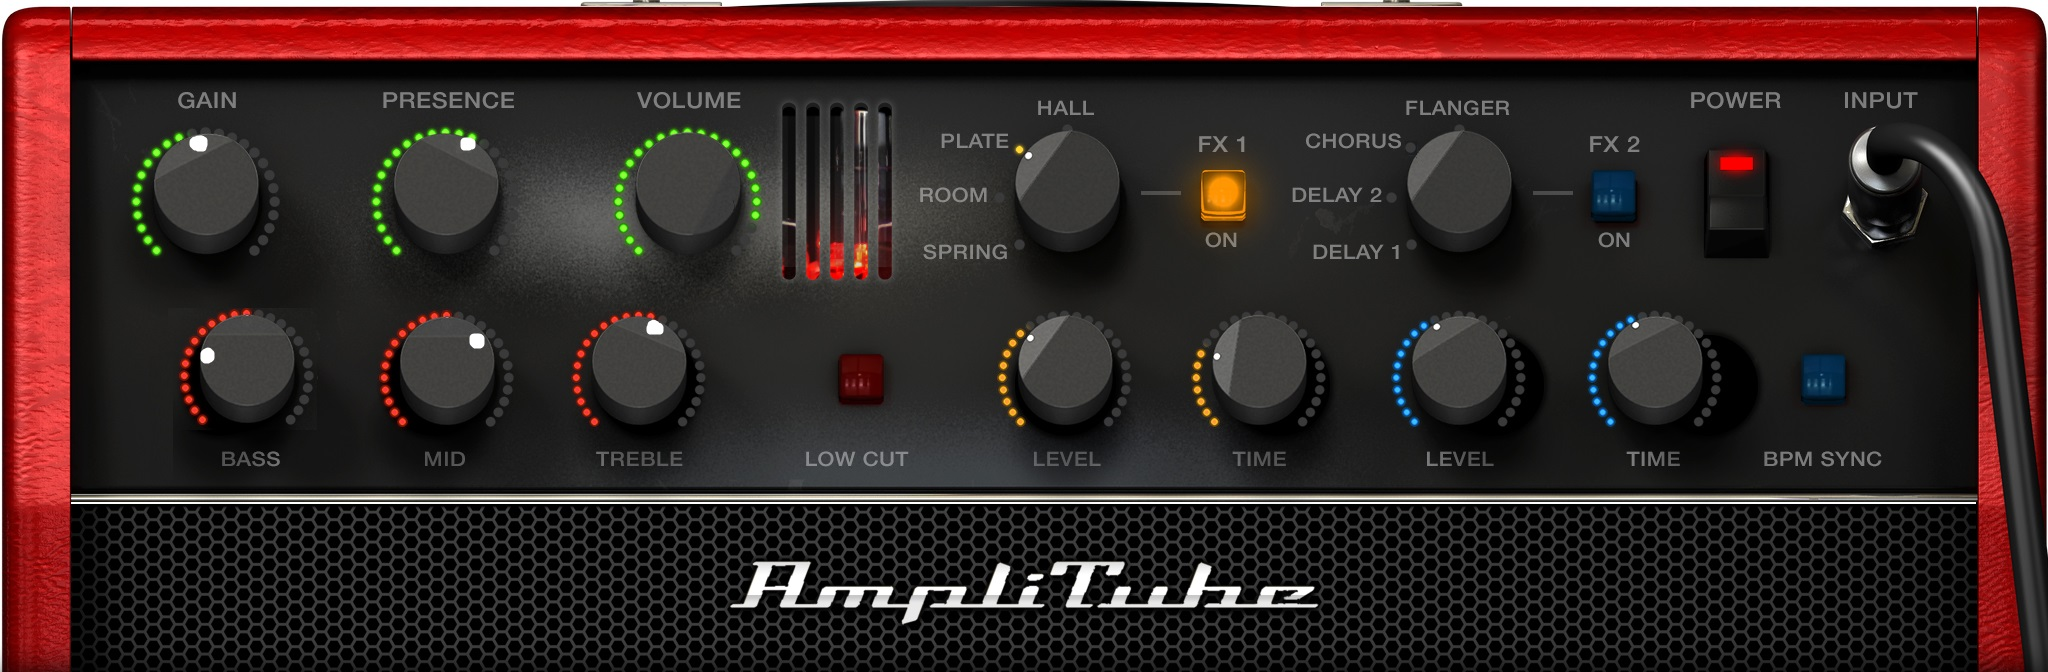 19 Guitar Amp Settings For The Best Electric Rock Tone Apmilifier Mini Bass Amplifier Circuit And Explanation Acoustic 20